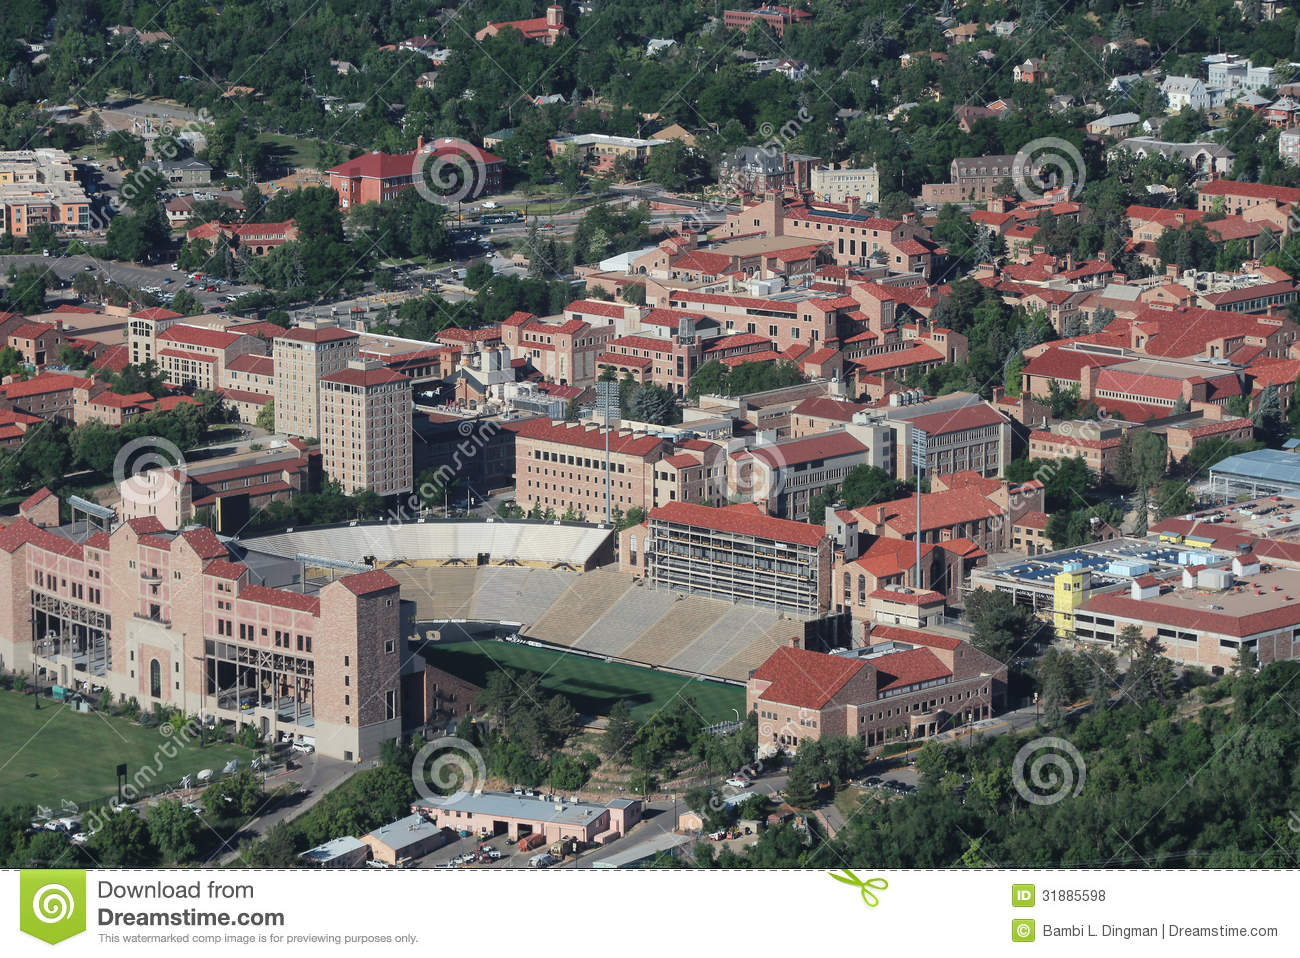 university of colorado boulder map with Royalty Free Stock Photos Aerial View University Colorado Boulder Folsom Field Foreground Image31885598 on Area denver cherry creek also Pilates Reformer also Jimenez Group together with Willard moreover Ice Extent.